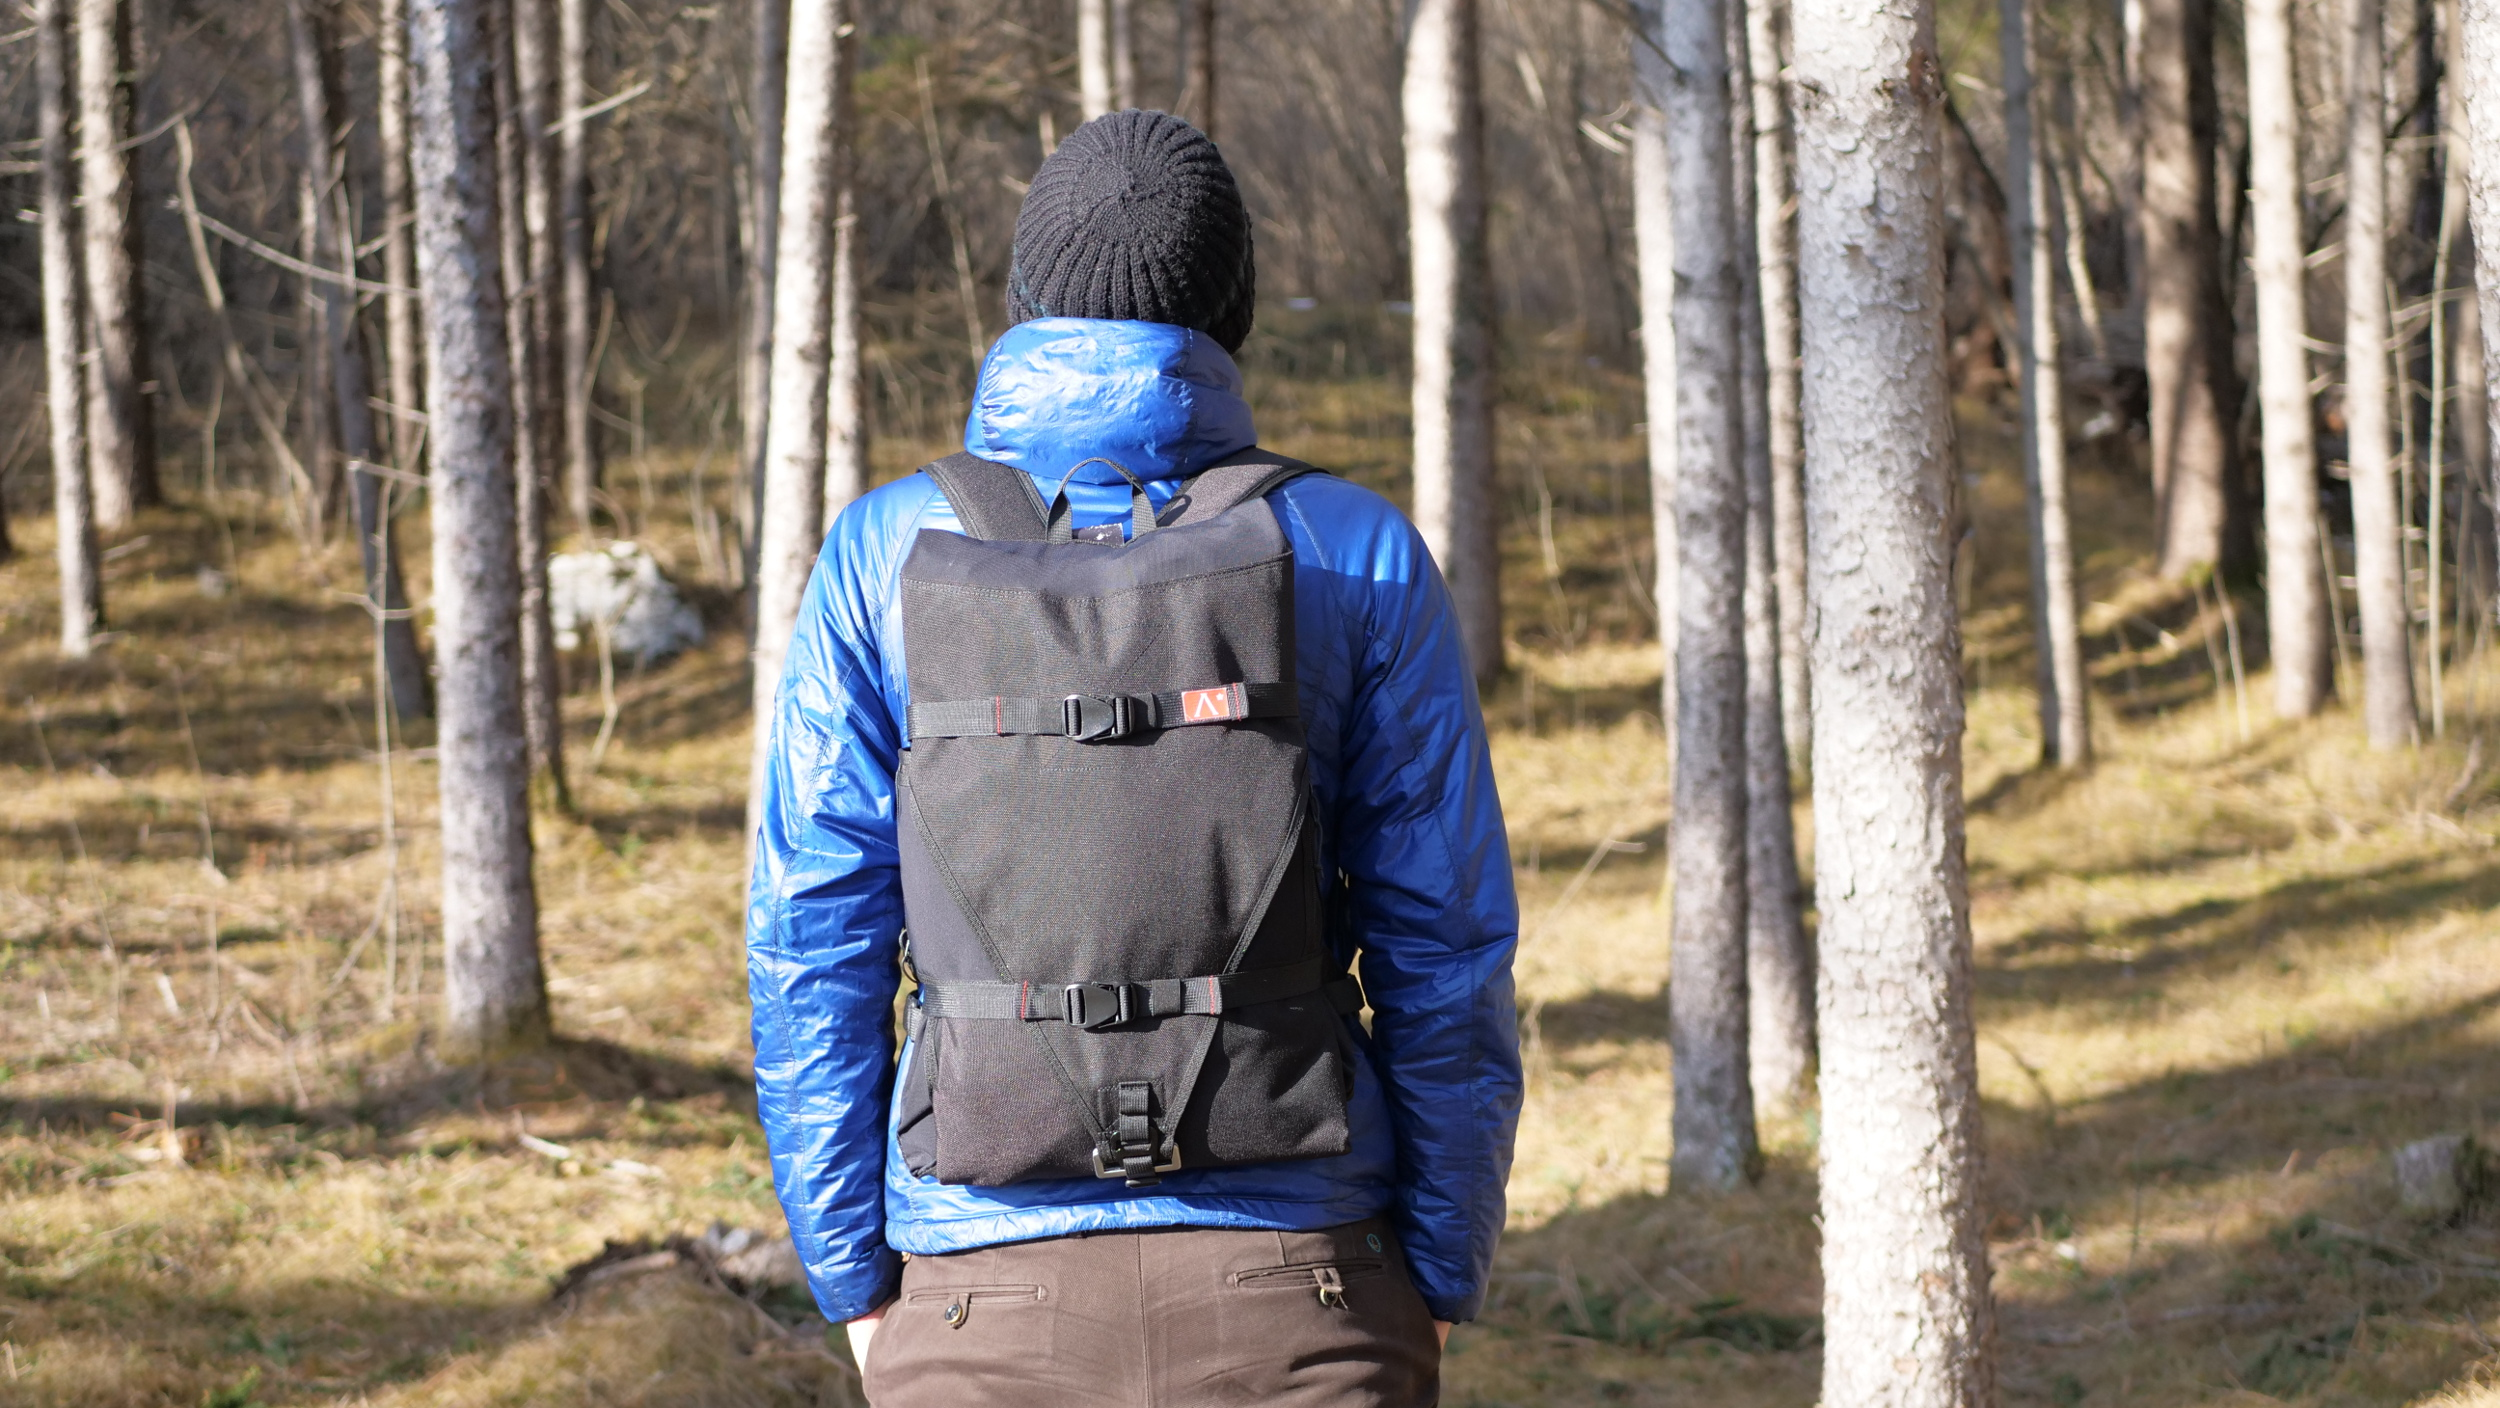 The hammock easily folds up into a backpack that can also hold 20 litres.